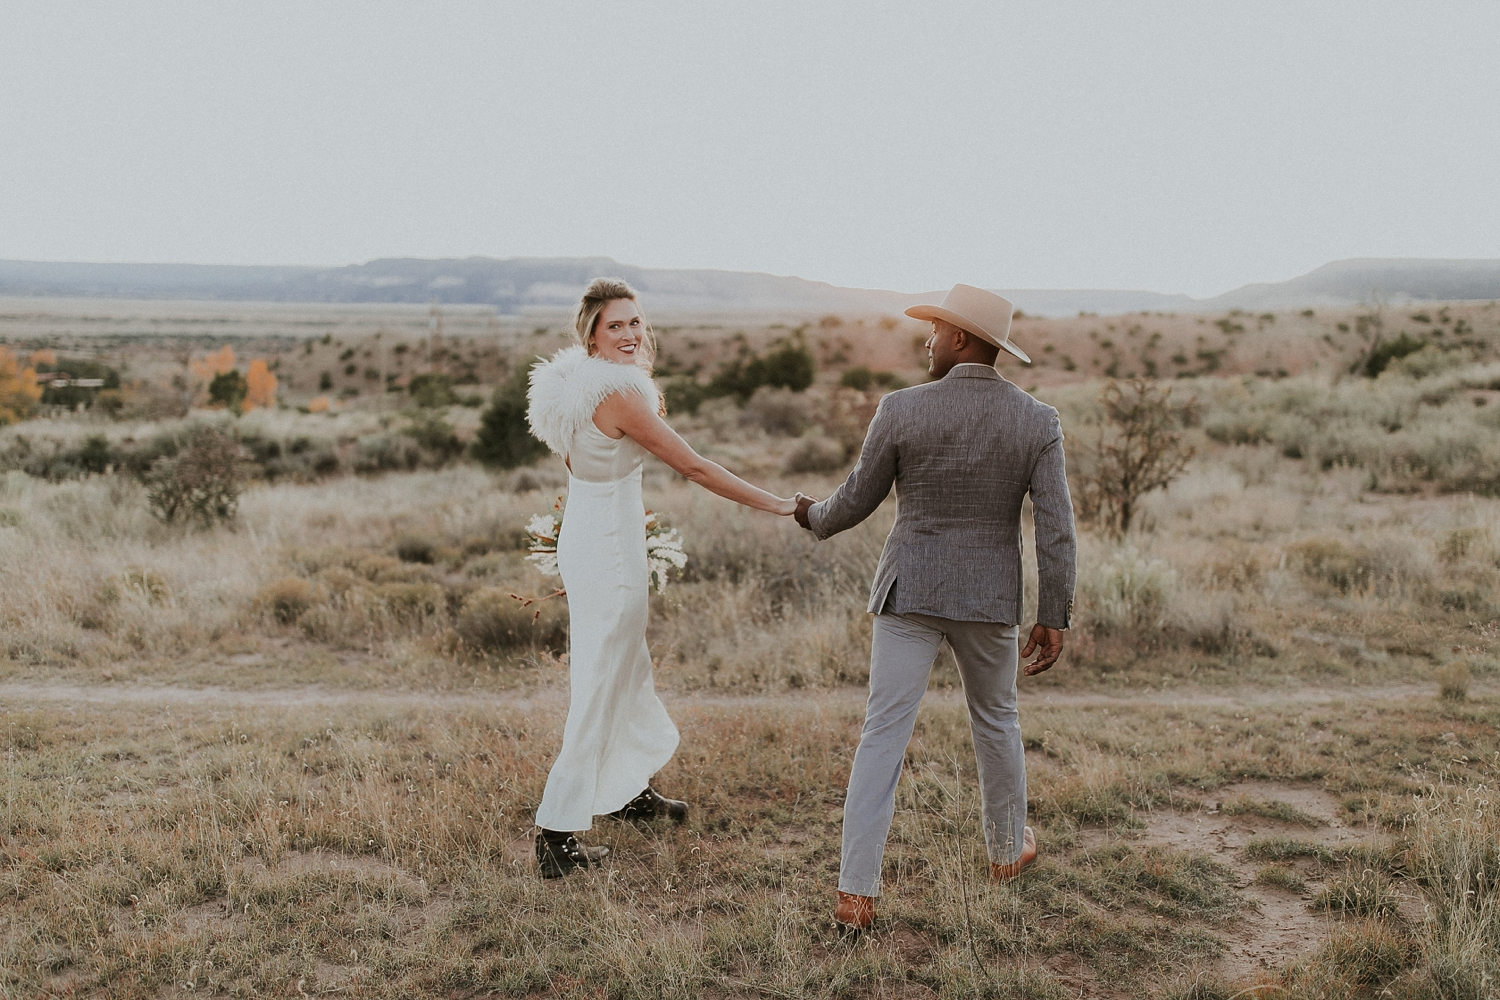 Alicia+lucia+photography+-+albuquerque+wedding+photographer+-+santa+fe+wedding+photography+-+new+mexico+wedding+photographer+-+new+mexico+ghost+ranch+wedding+-+styled+wedding+shoot_0071.jpg